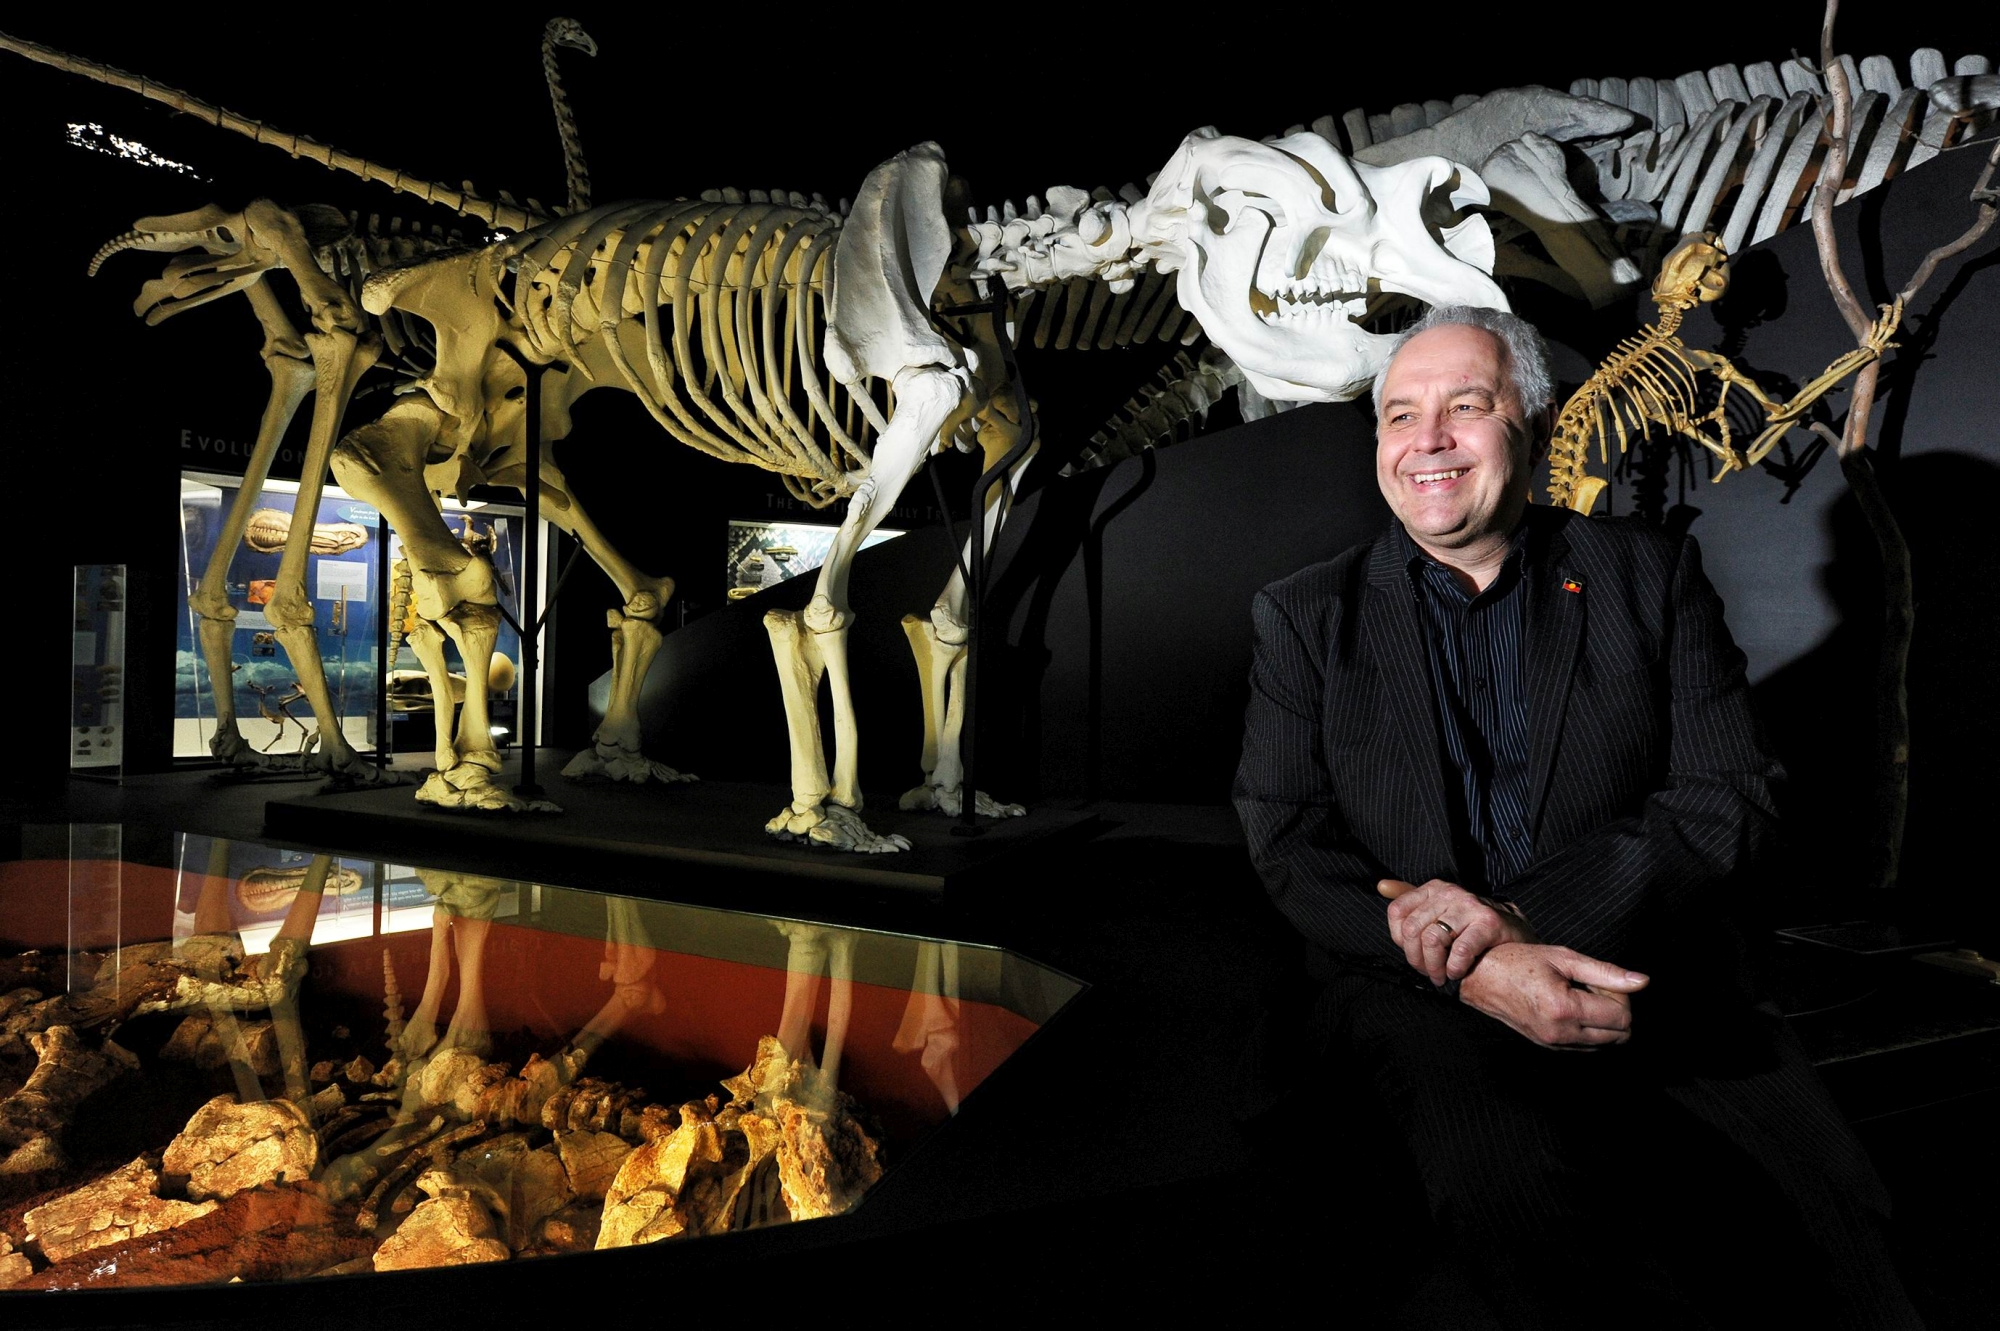 Western Australian Museum chief executive officer Alec Coles in the dinosaur sector.Picture: Marcus Whisson d402866